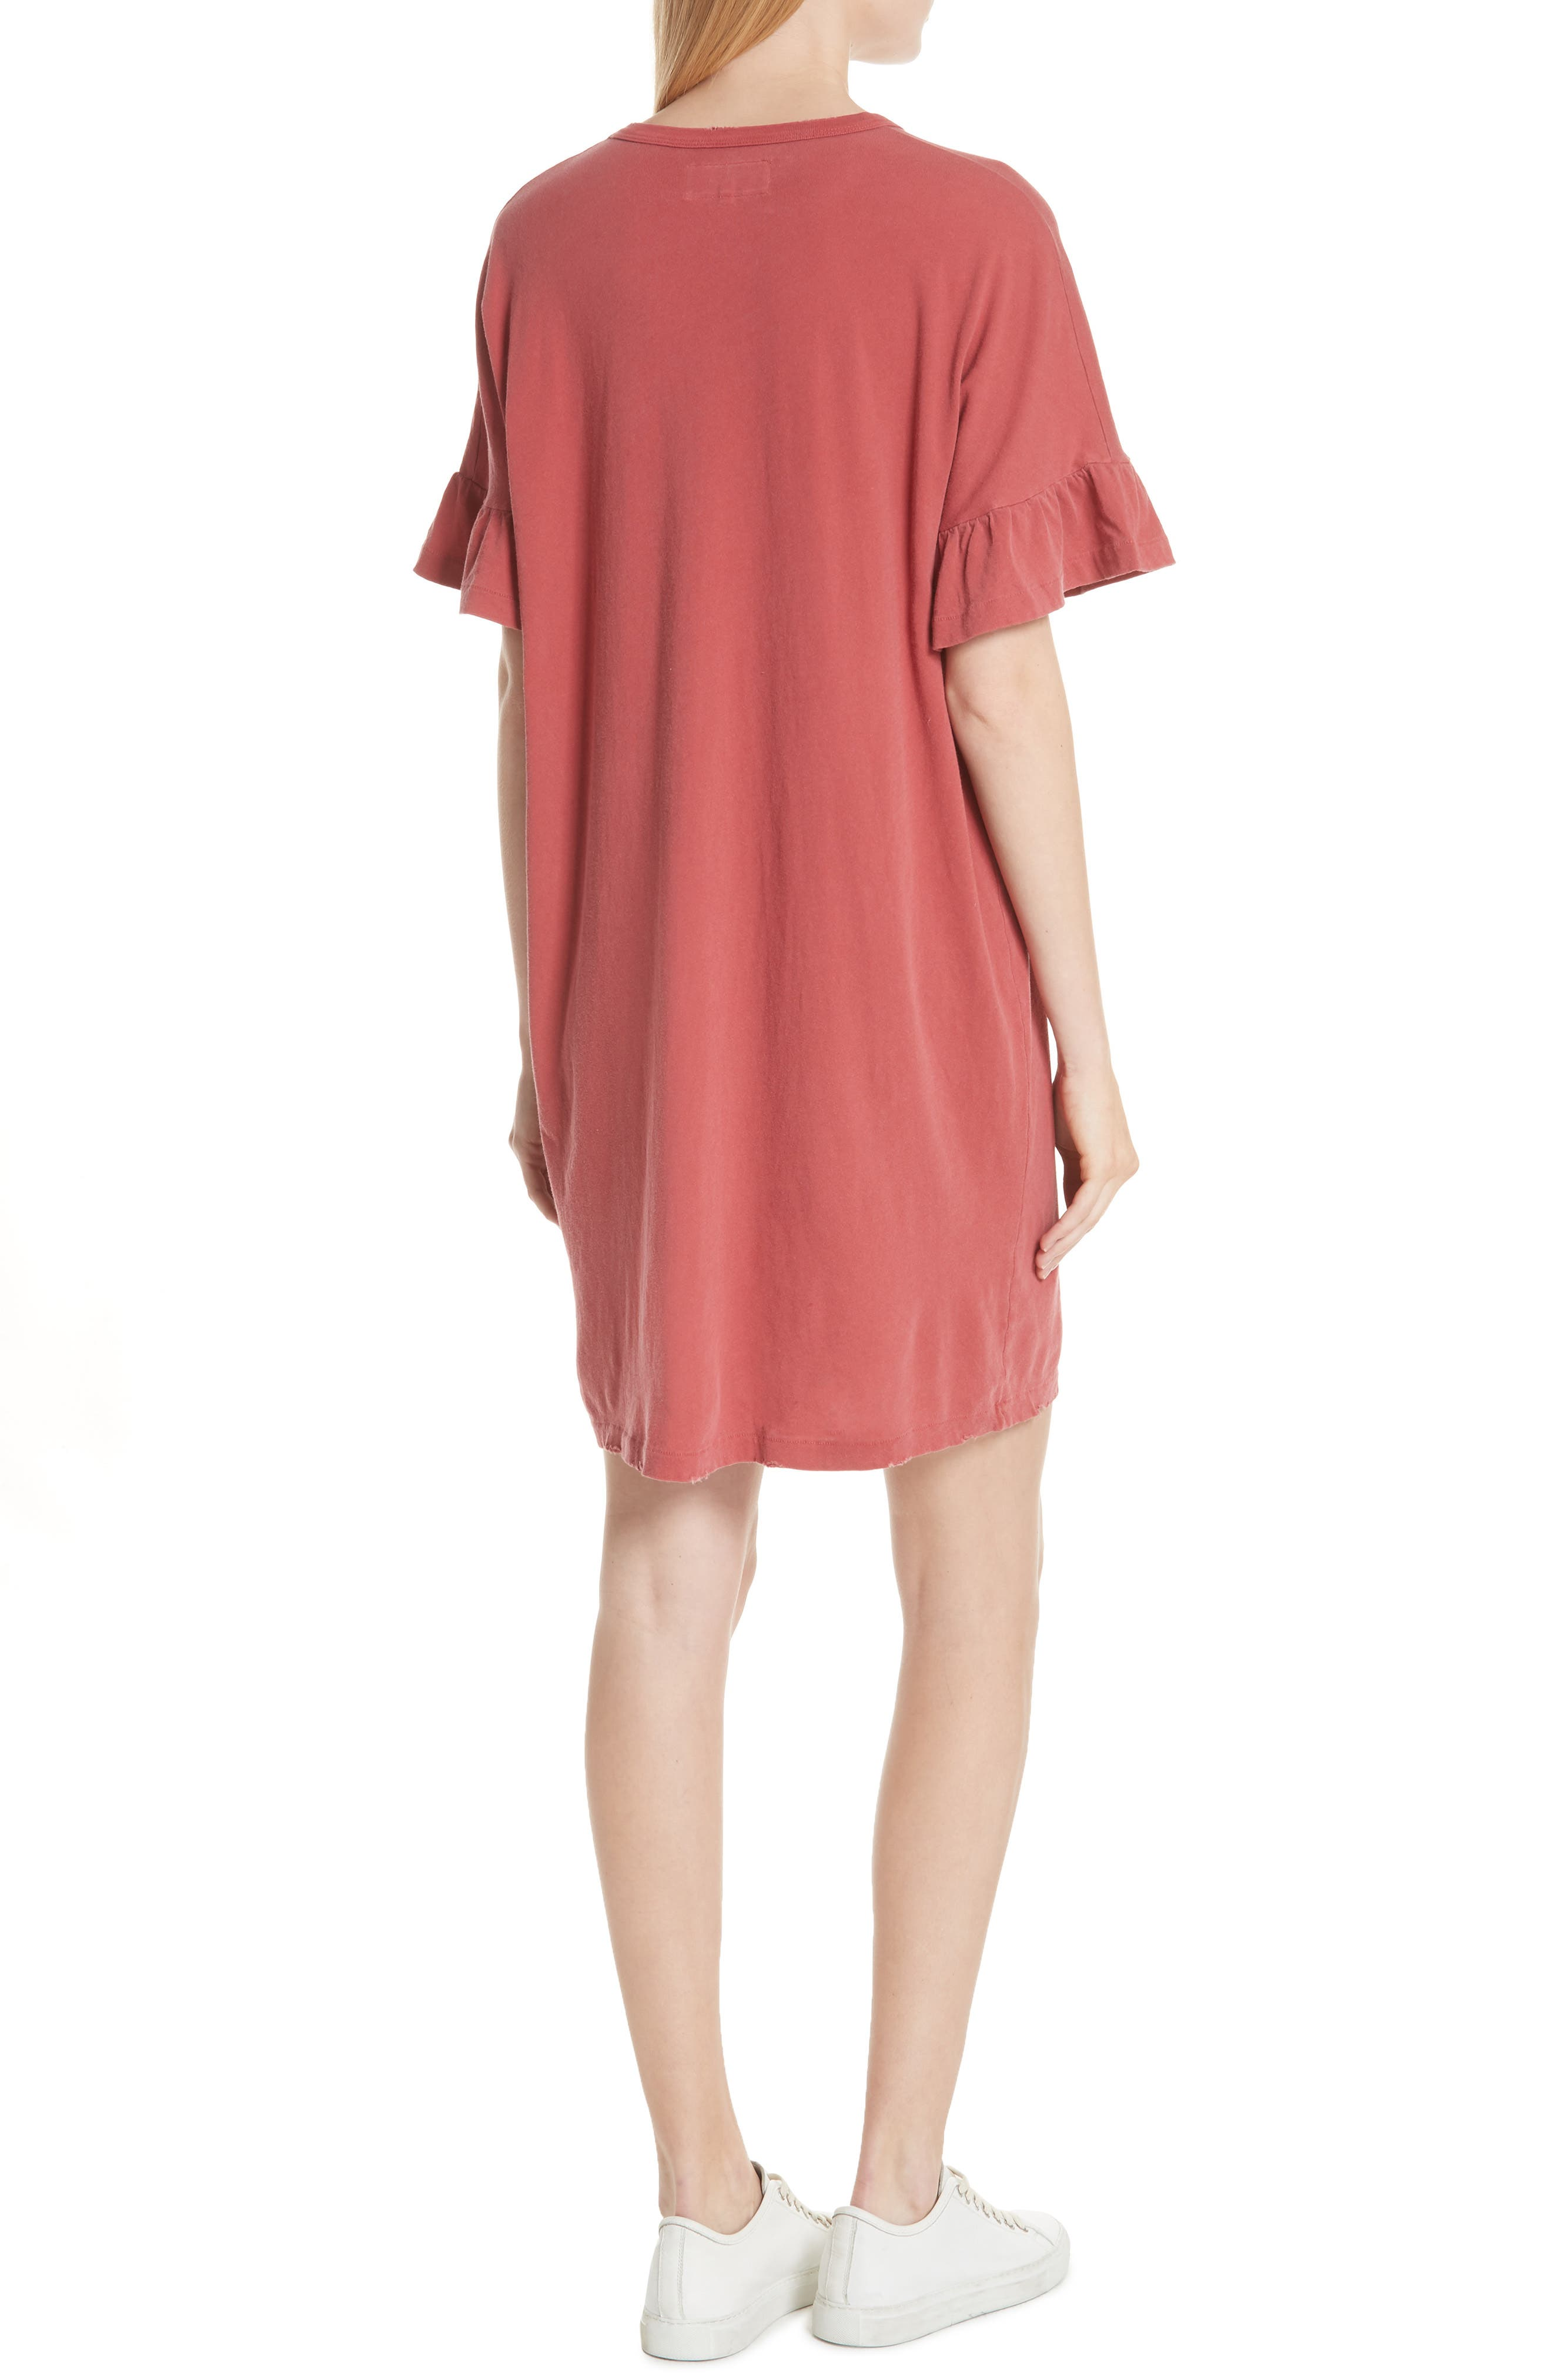 Ruffle Sleeve T-Shirt Dress,                             Alternate thumbnail 2, color,